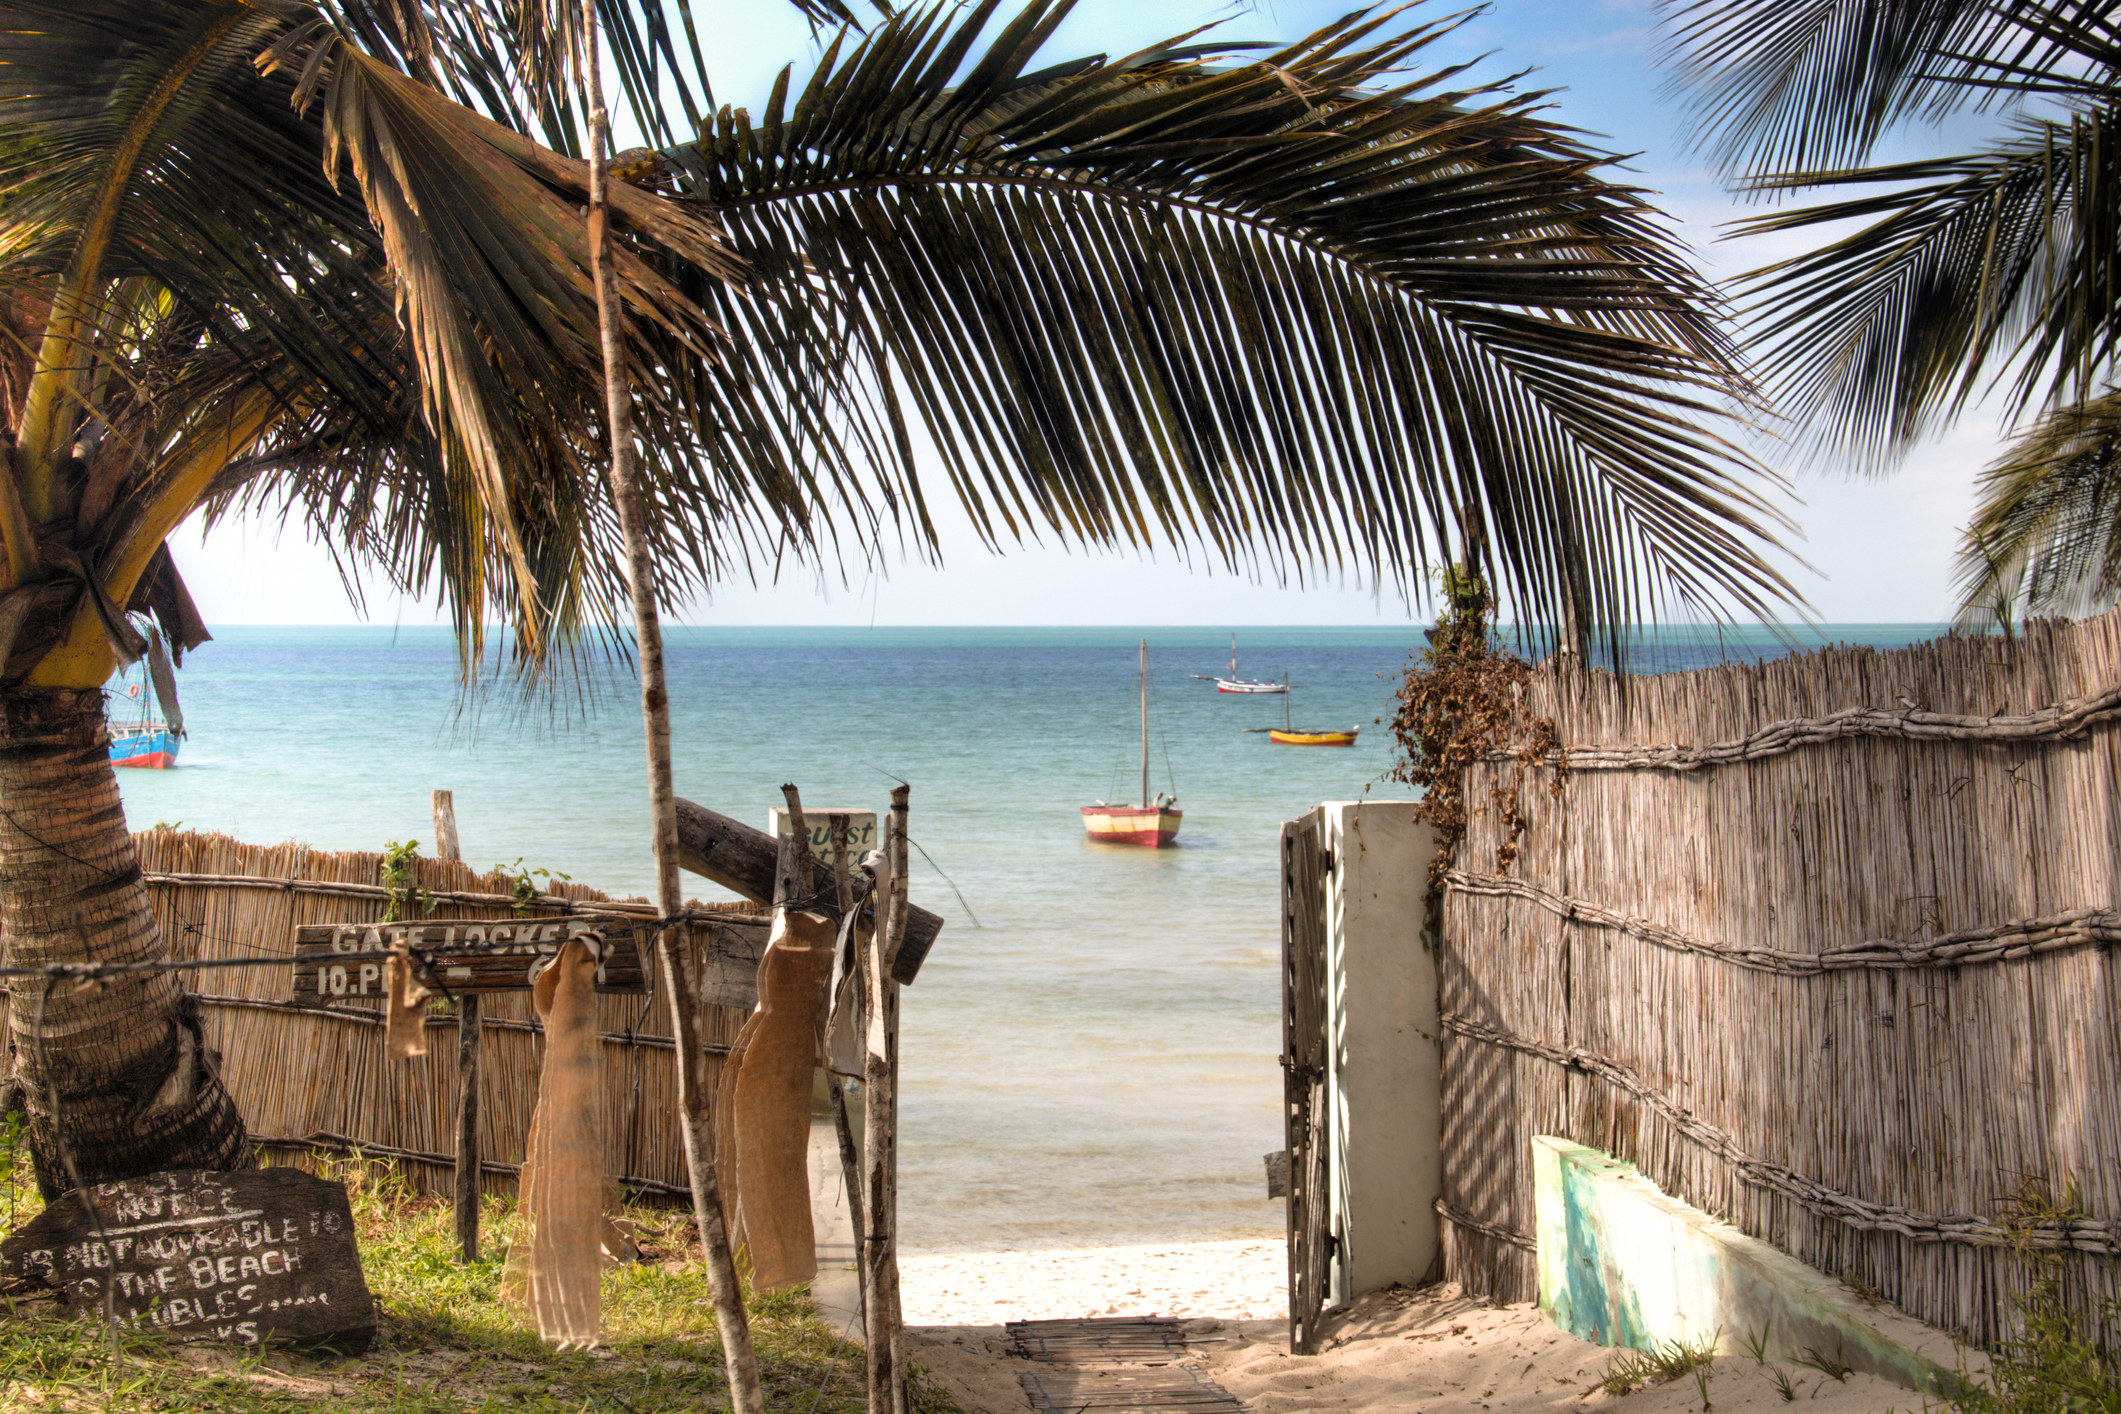 A path leading to the beach, with large palm trees and a fence made from natural materials